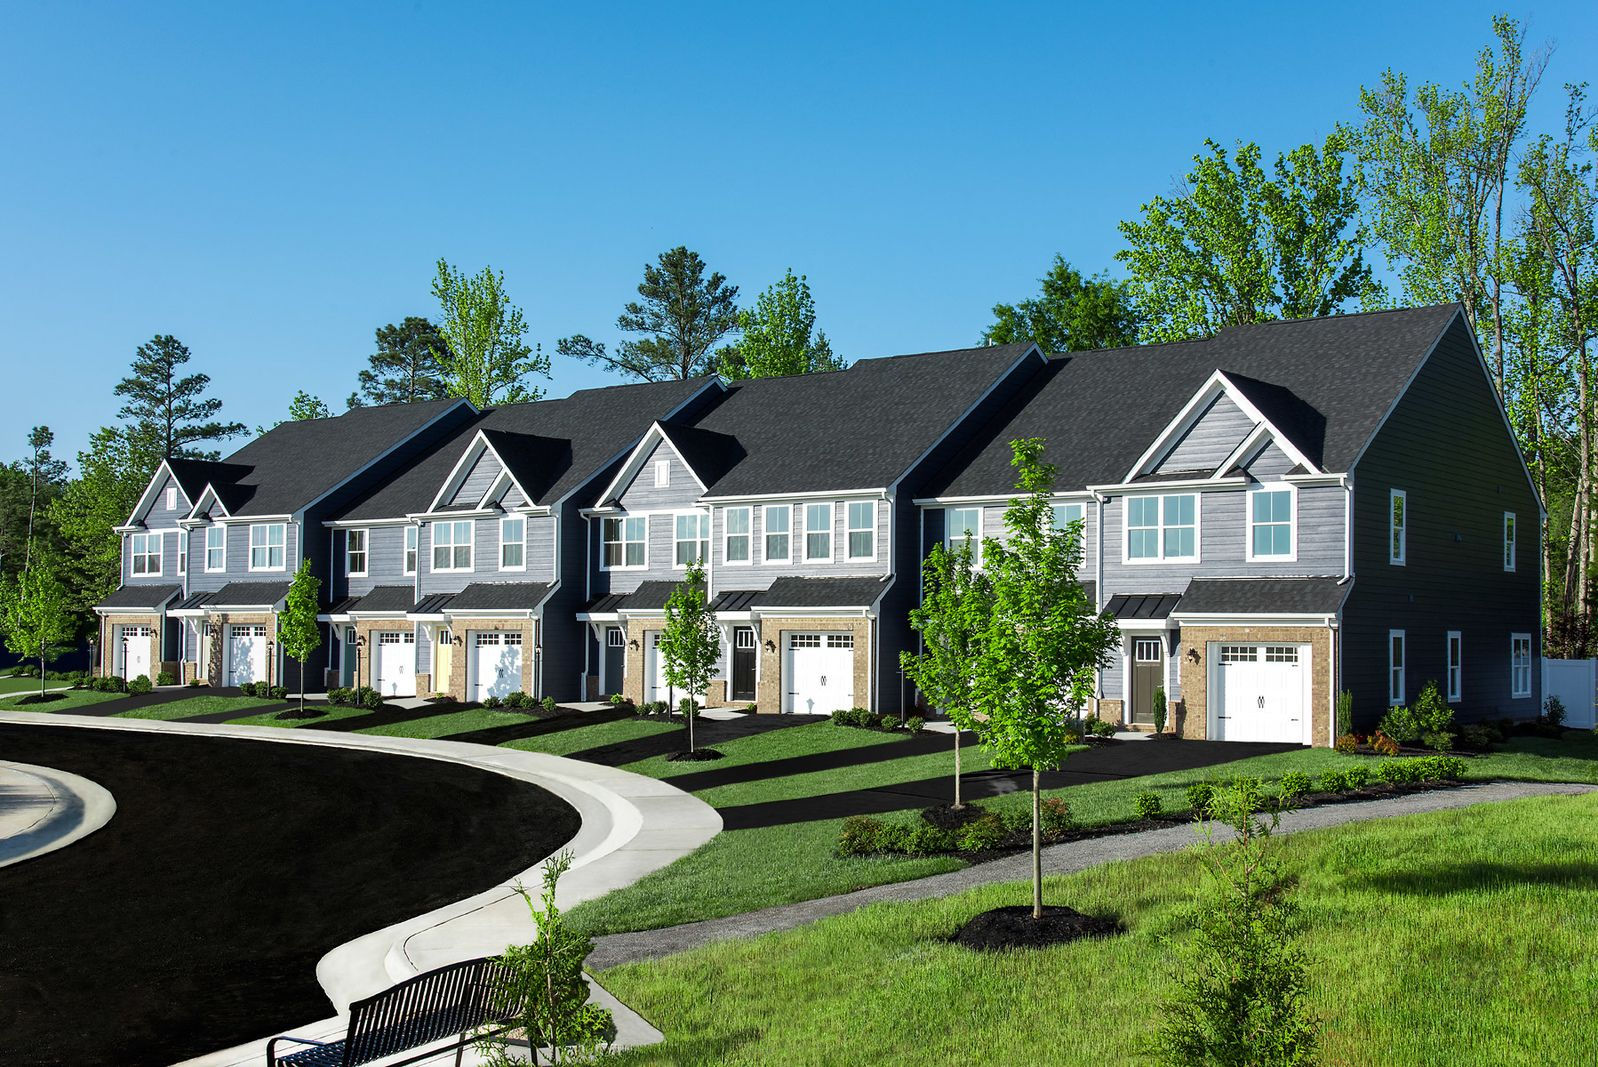 Winding Brook Townes – Garage Townhomes in Hanover:Welcome to Winding Brook Townes! Our location, affordability & convenience is truly unique. With $0 down financing available &30 homes already sold, isn't it time you visited?Click here!